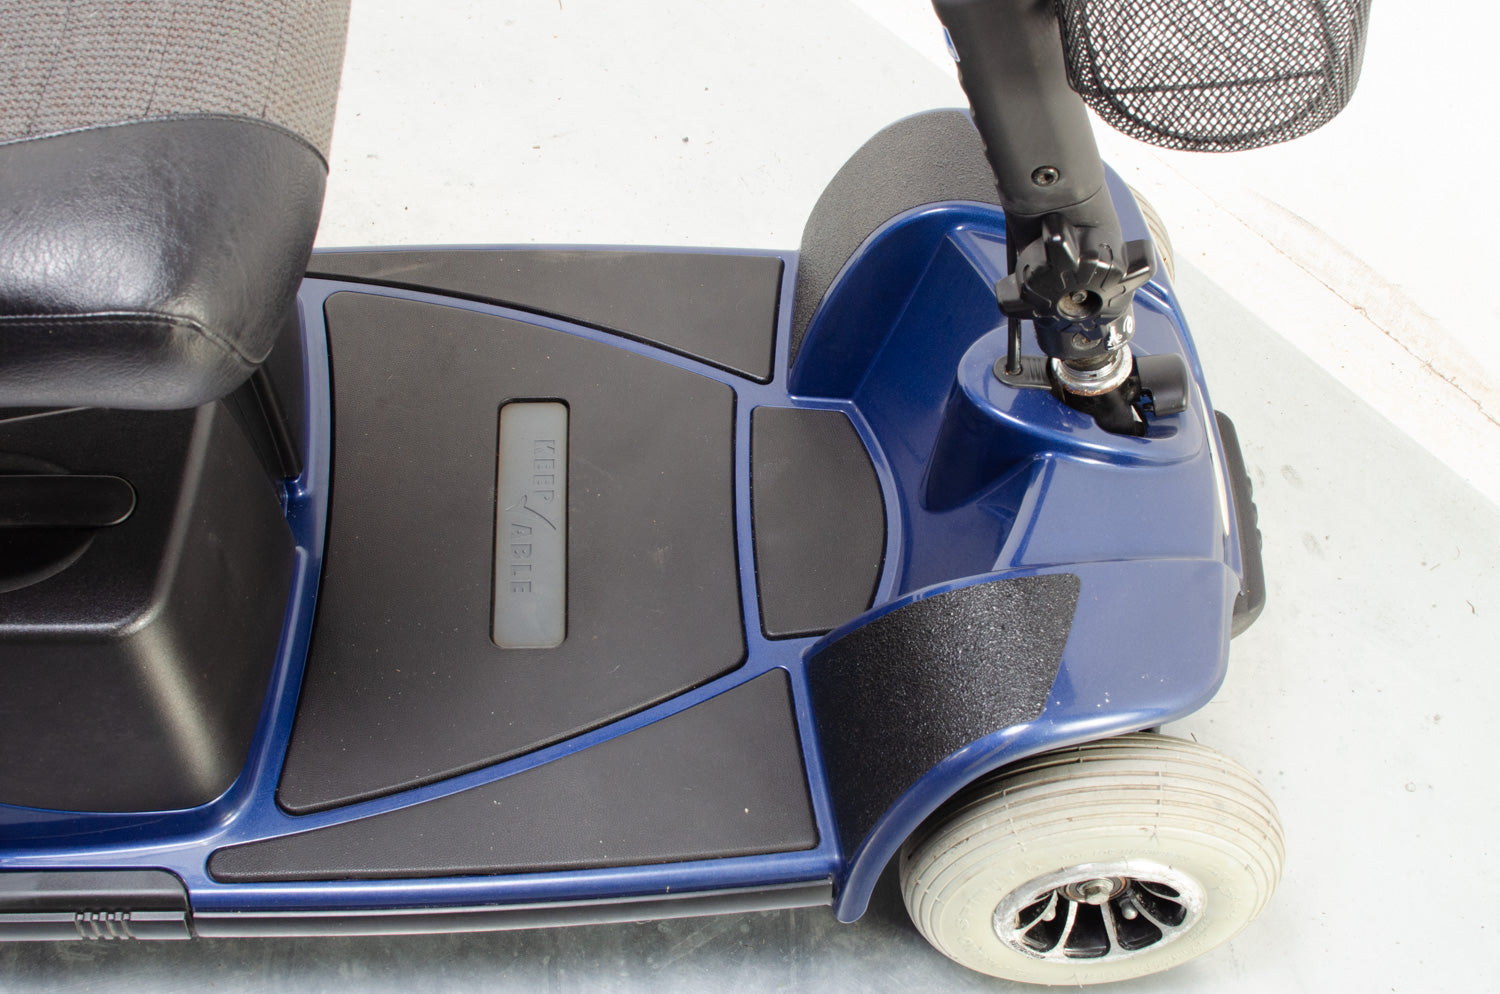 2010 Pride Pico Electric Mobility Scooter Used Second Hand 4mph Transportable Compact Boot Blue